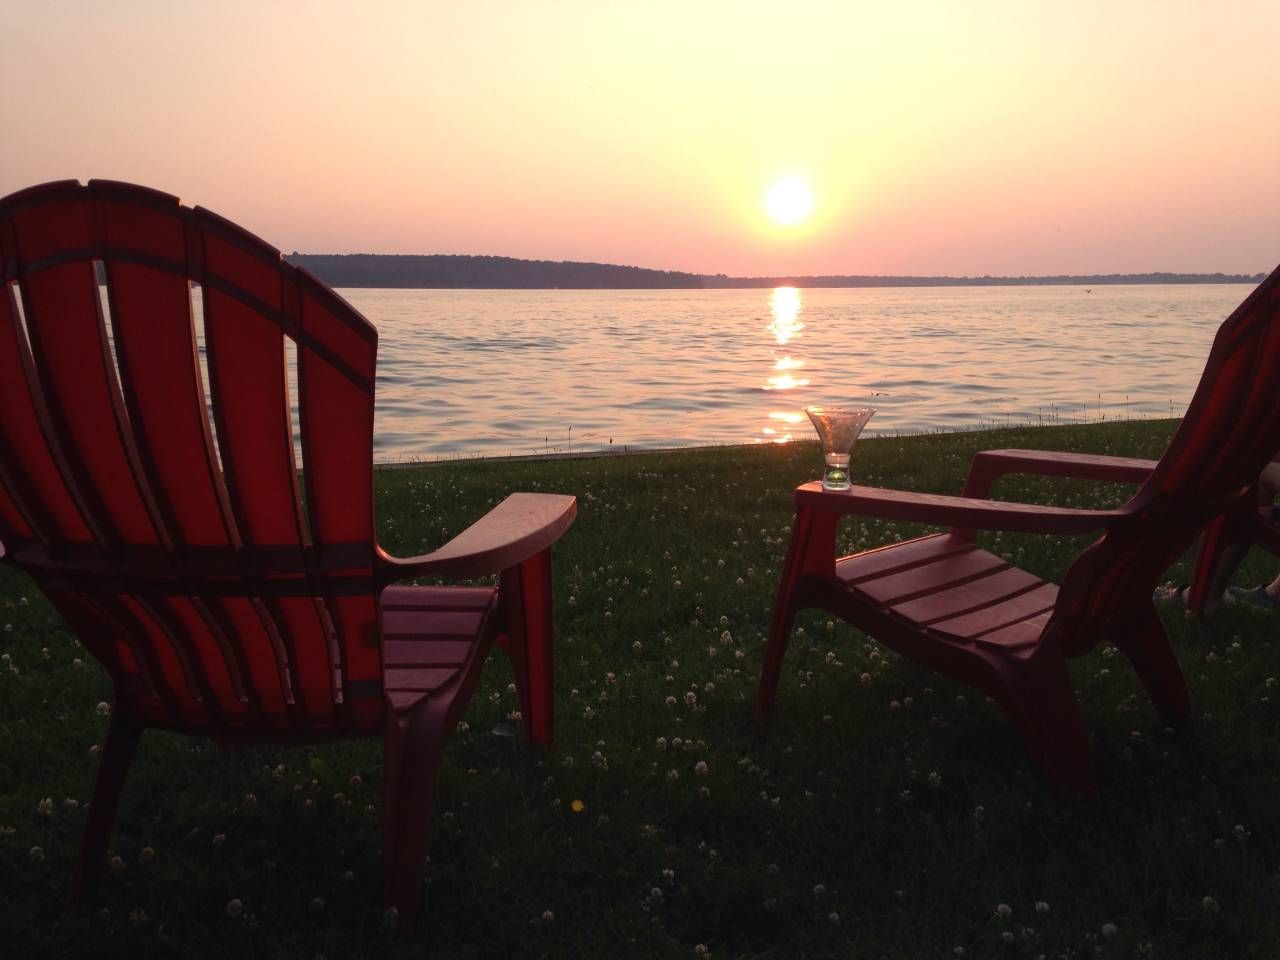 Sunset View Lake Front Cottage Cottages For Rent In Wolcott New York United States Vacation Home Lake Ontario Sunset Views